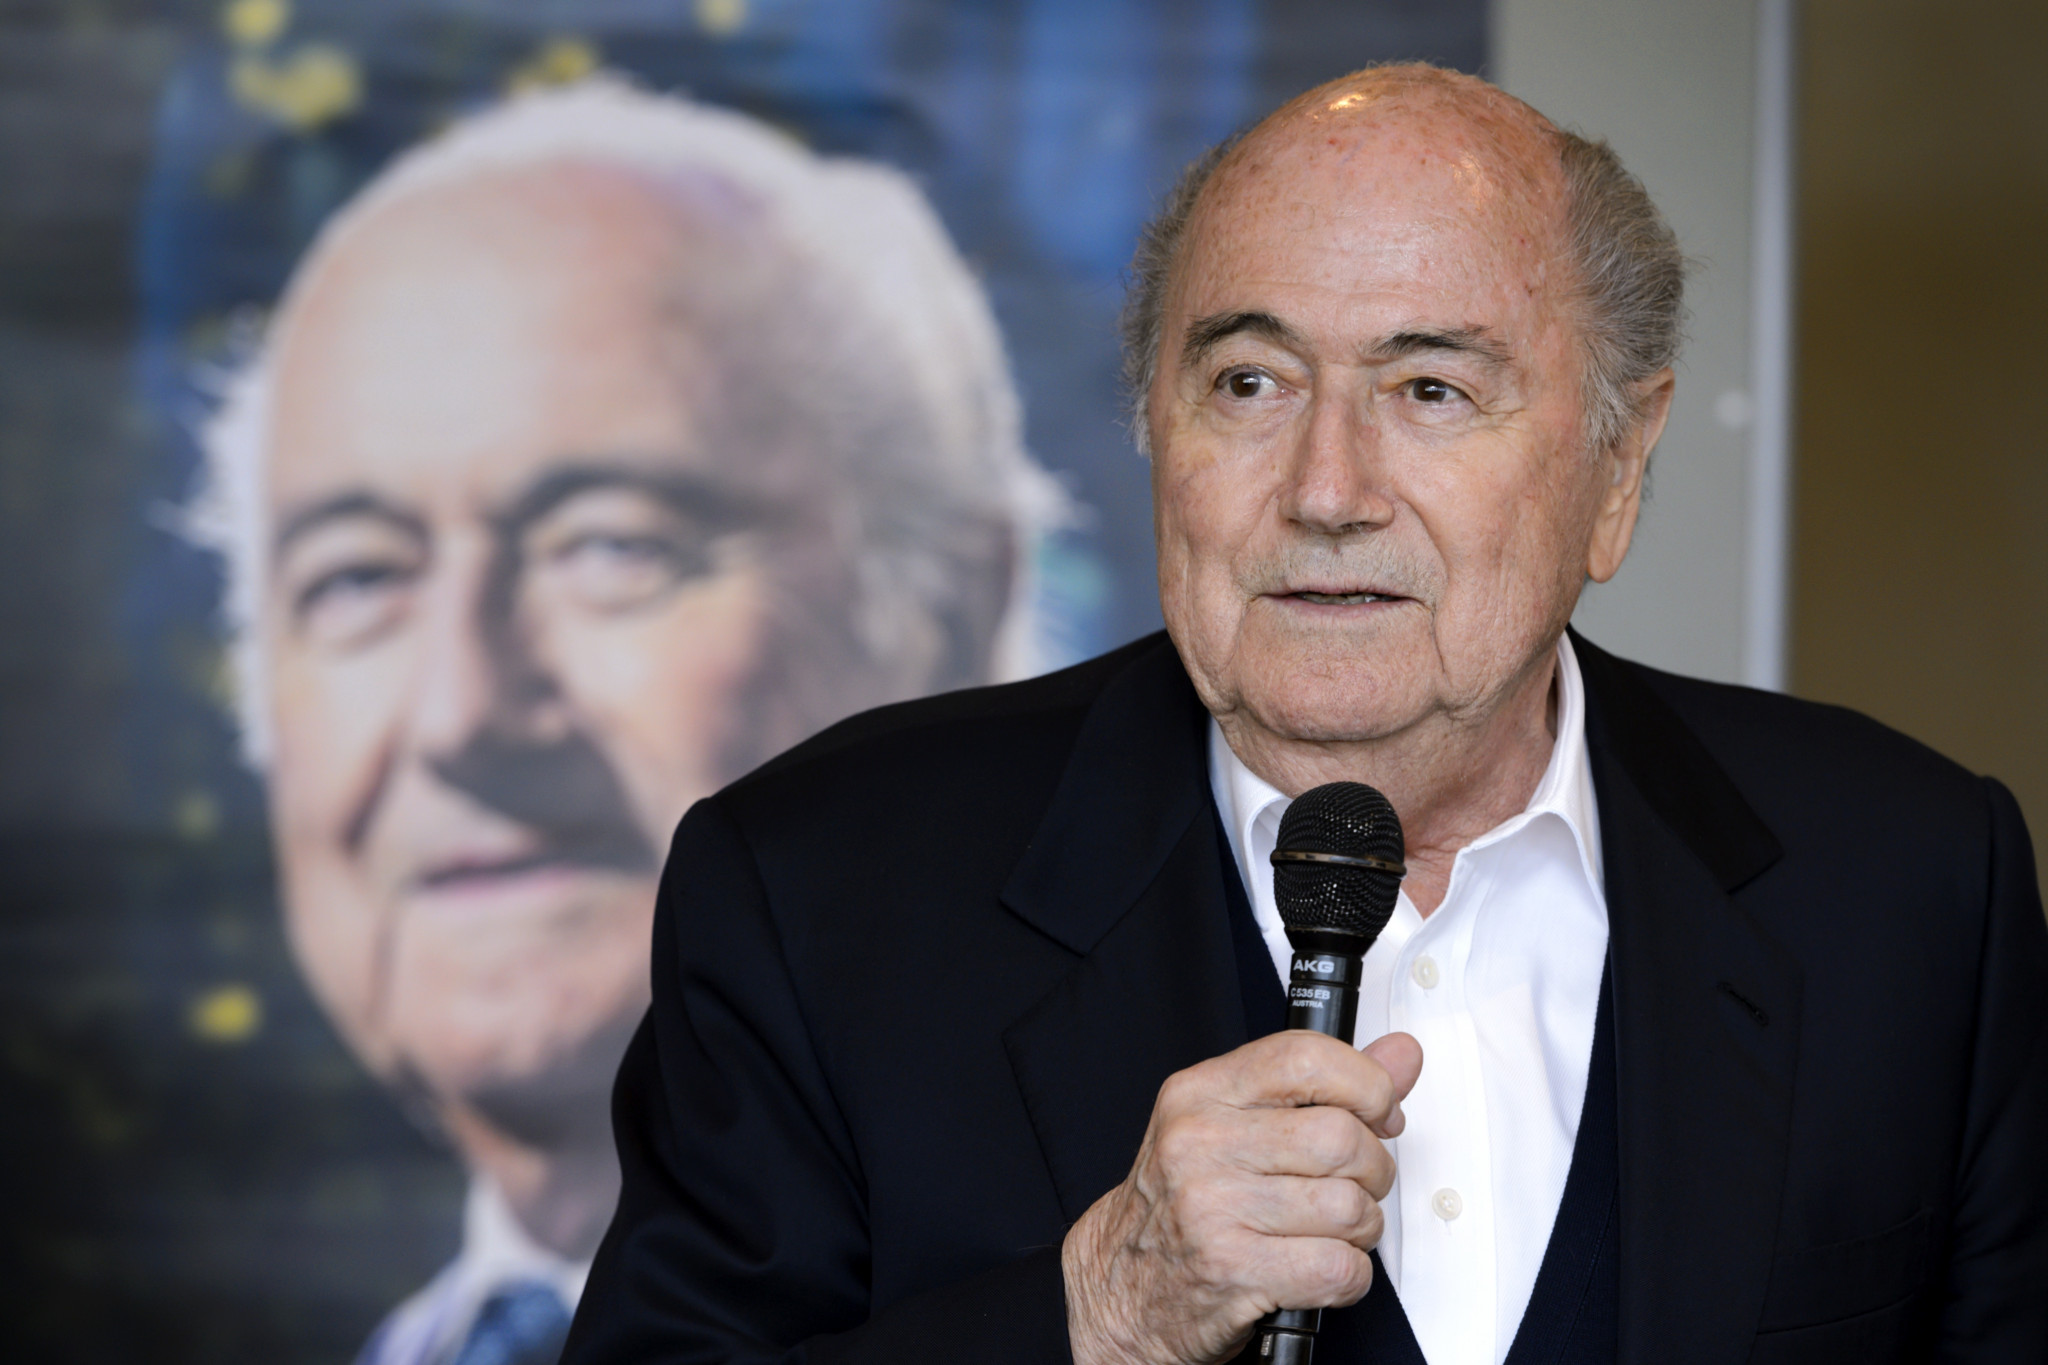 Former FIFA President Blatter spent period in induced coma after heart operation